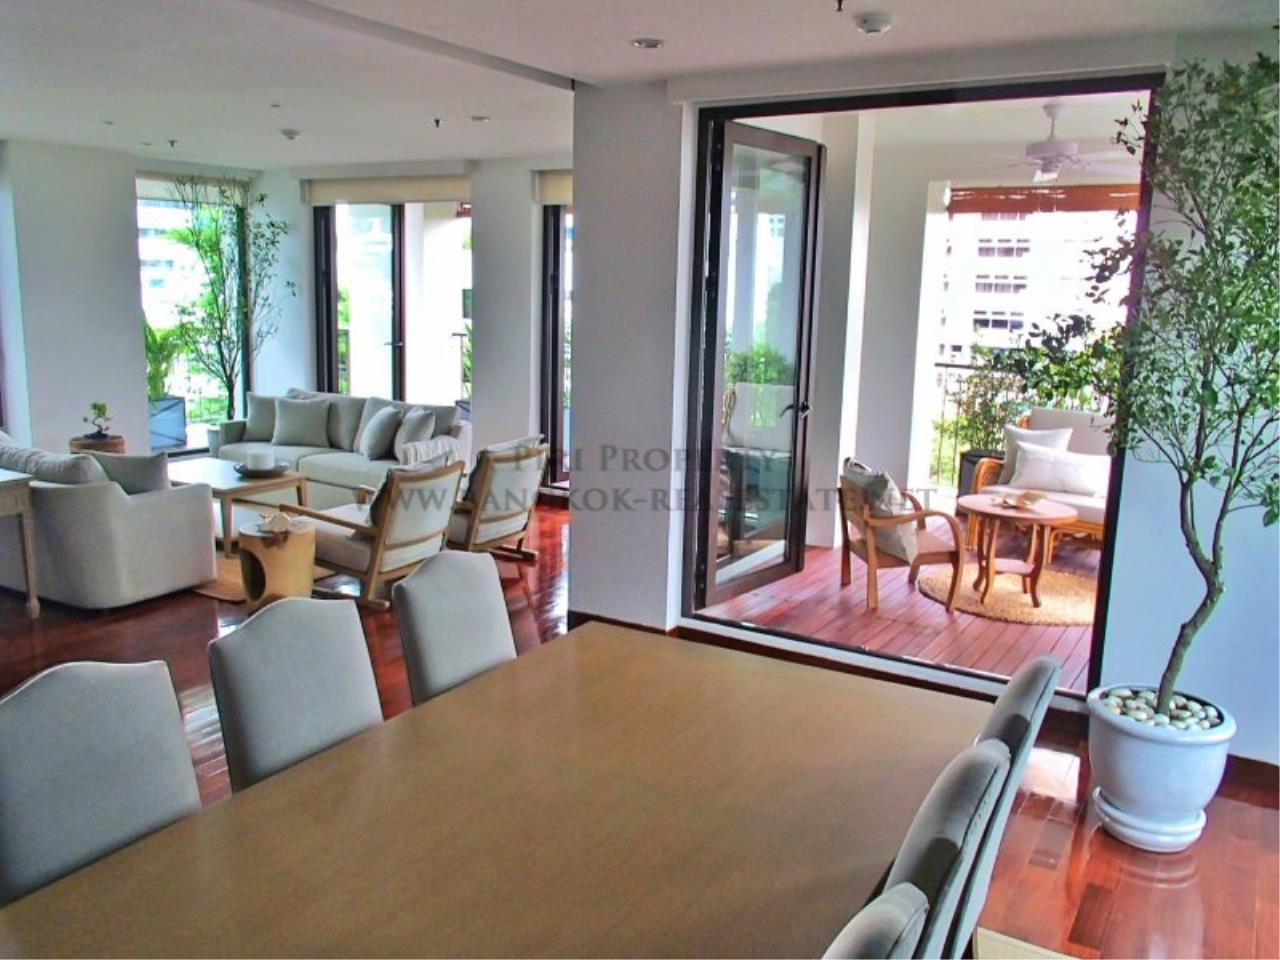 Piri Property Agency's Super Huge and Spacious Apartment in Sathorn - 450 SQM of Luxury 5